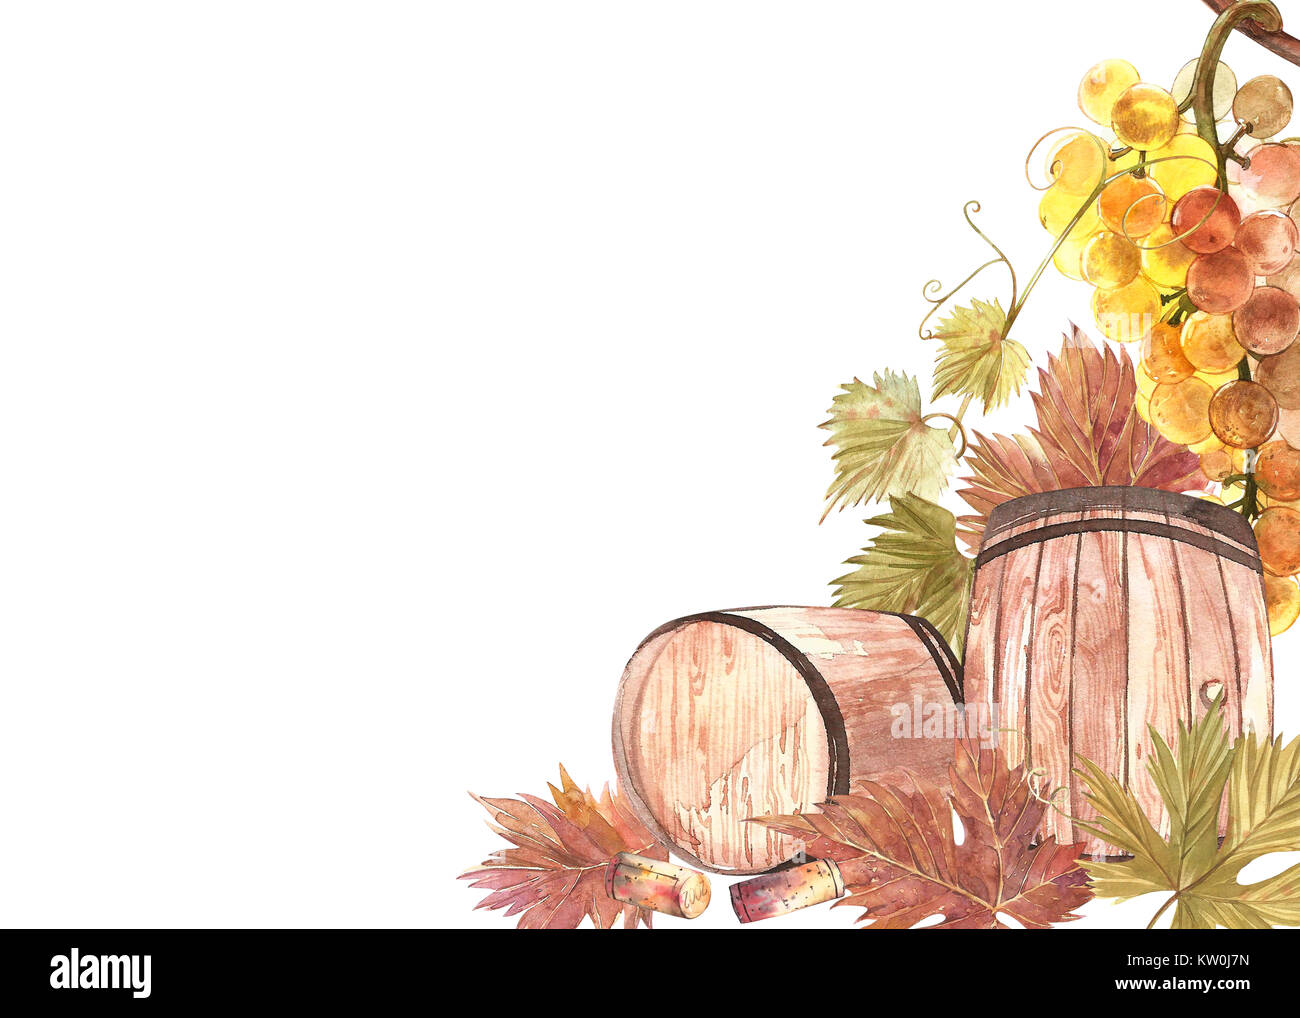 Wooden barrels and leaves of grapes, isolated on white. Hand drawn watercolor illustration. Banners of wine vintage Stock Photo